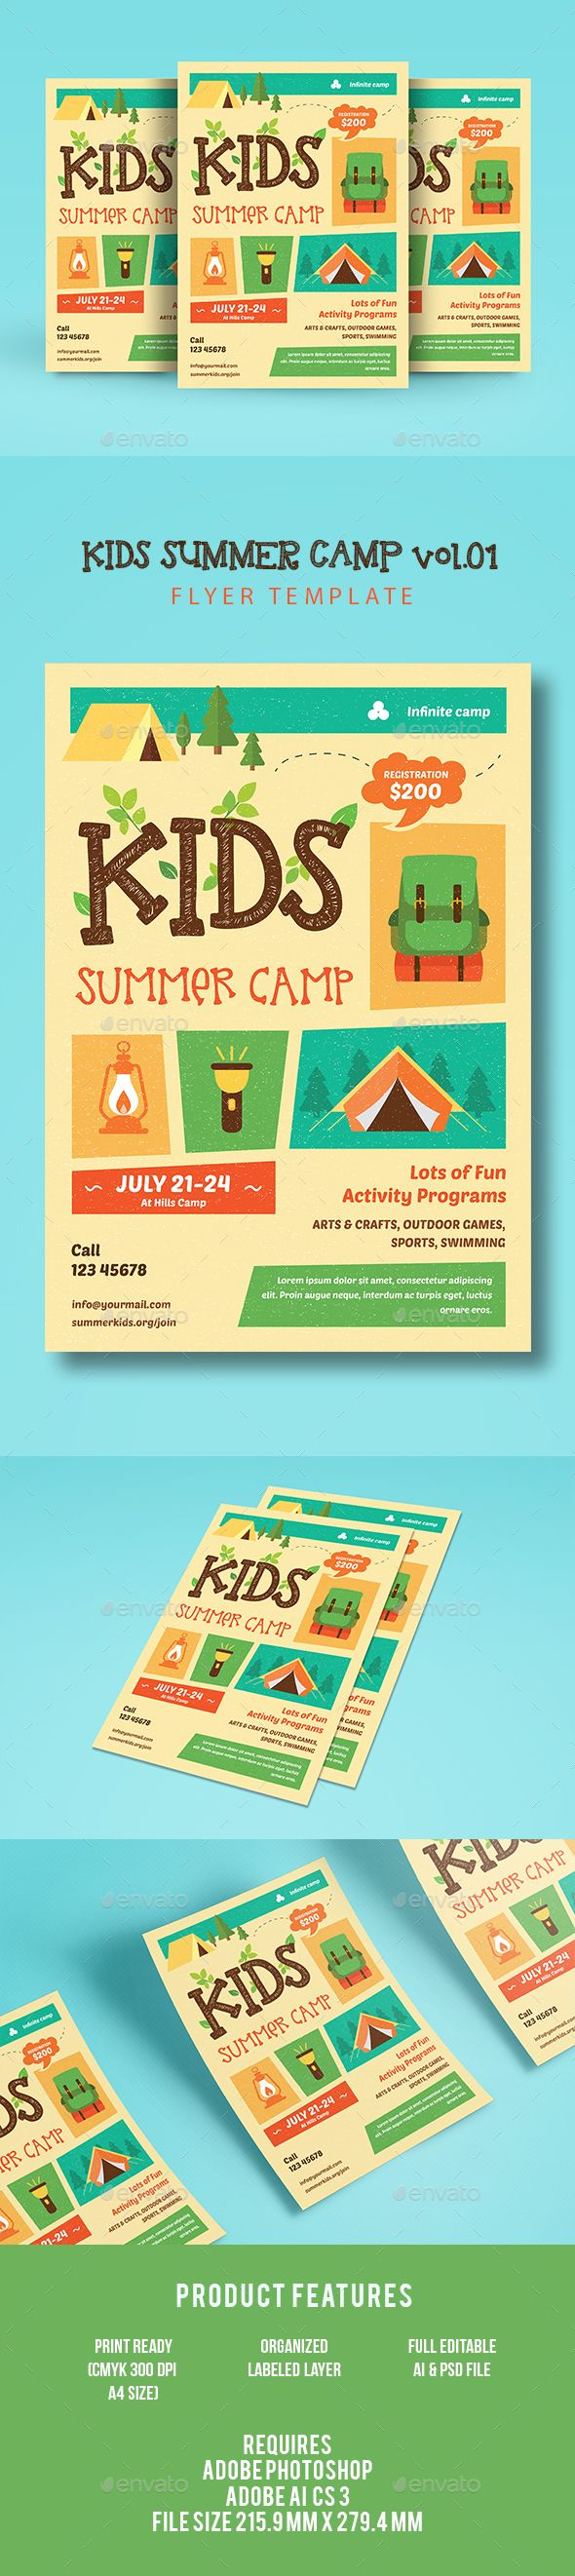 Kids Summer Camp. Print-templates Flyers Events. To make this pin discoverable activity, adventure, advert, advertisement, arts, camp, child, children, class, community, crafts, easter, family, fun, holiday, indie camp, kid, kids, kindergaten, outdoor, play, play group, poster, program, recreation, sport, summer, summer camp, summer camp flyer, and summer kids camp.